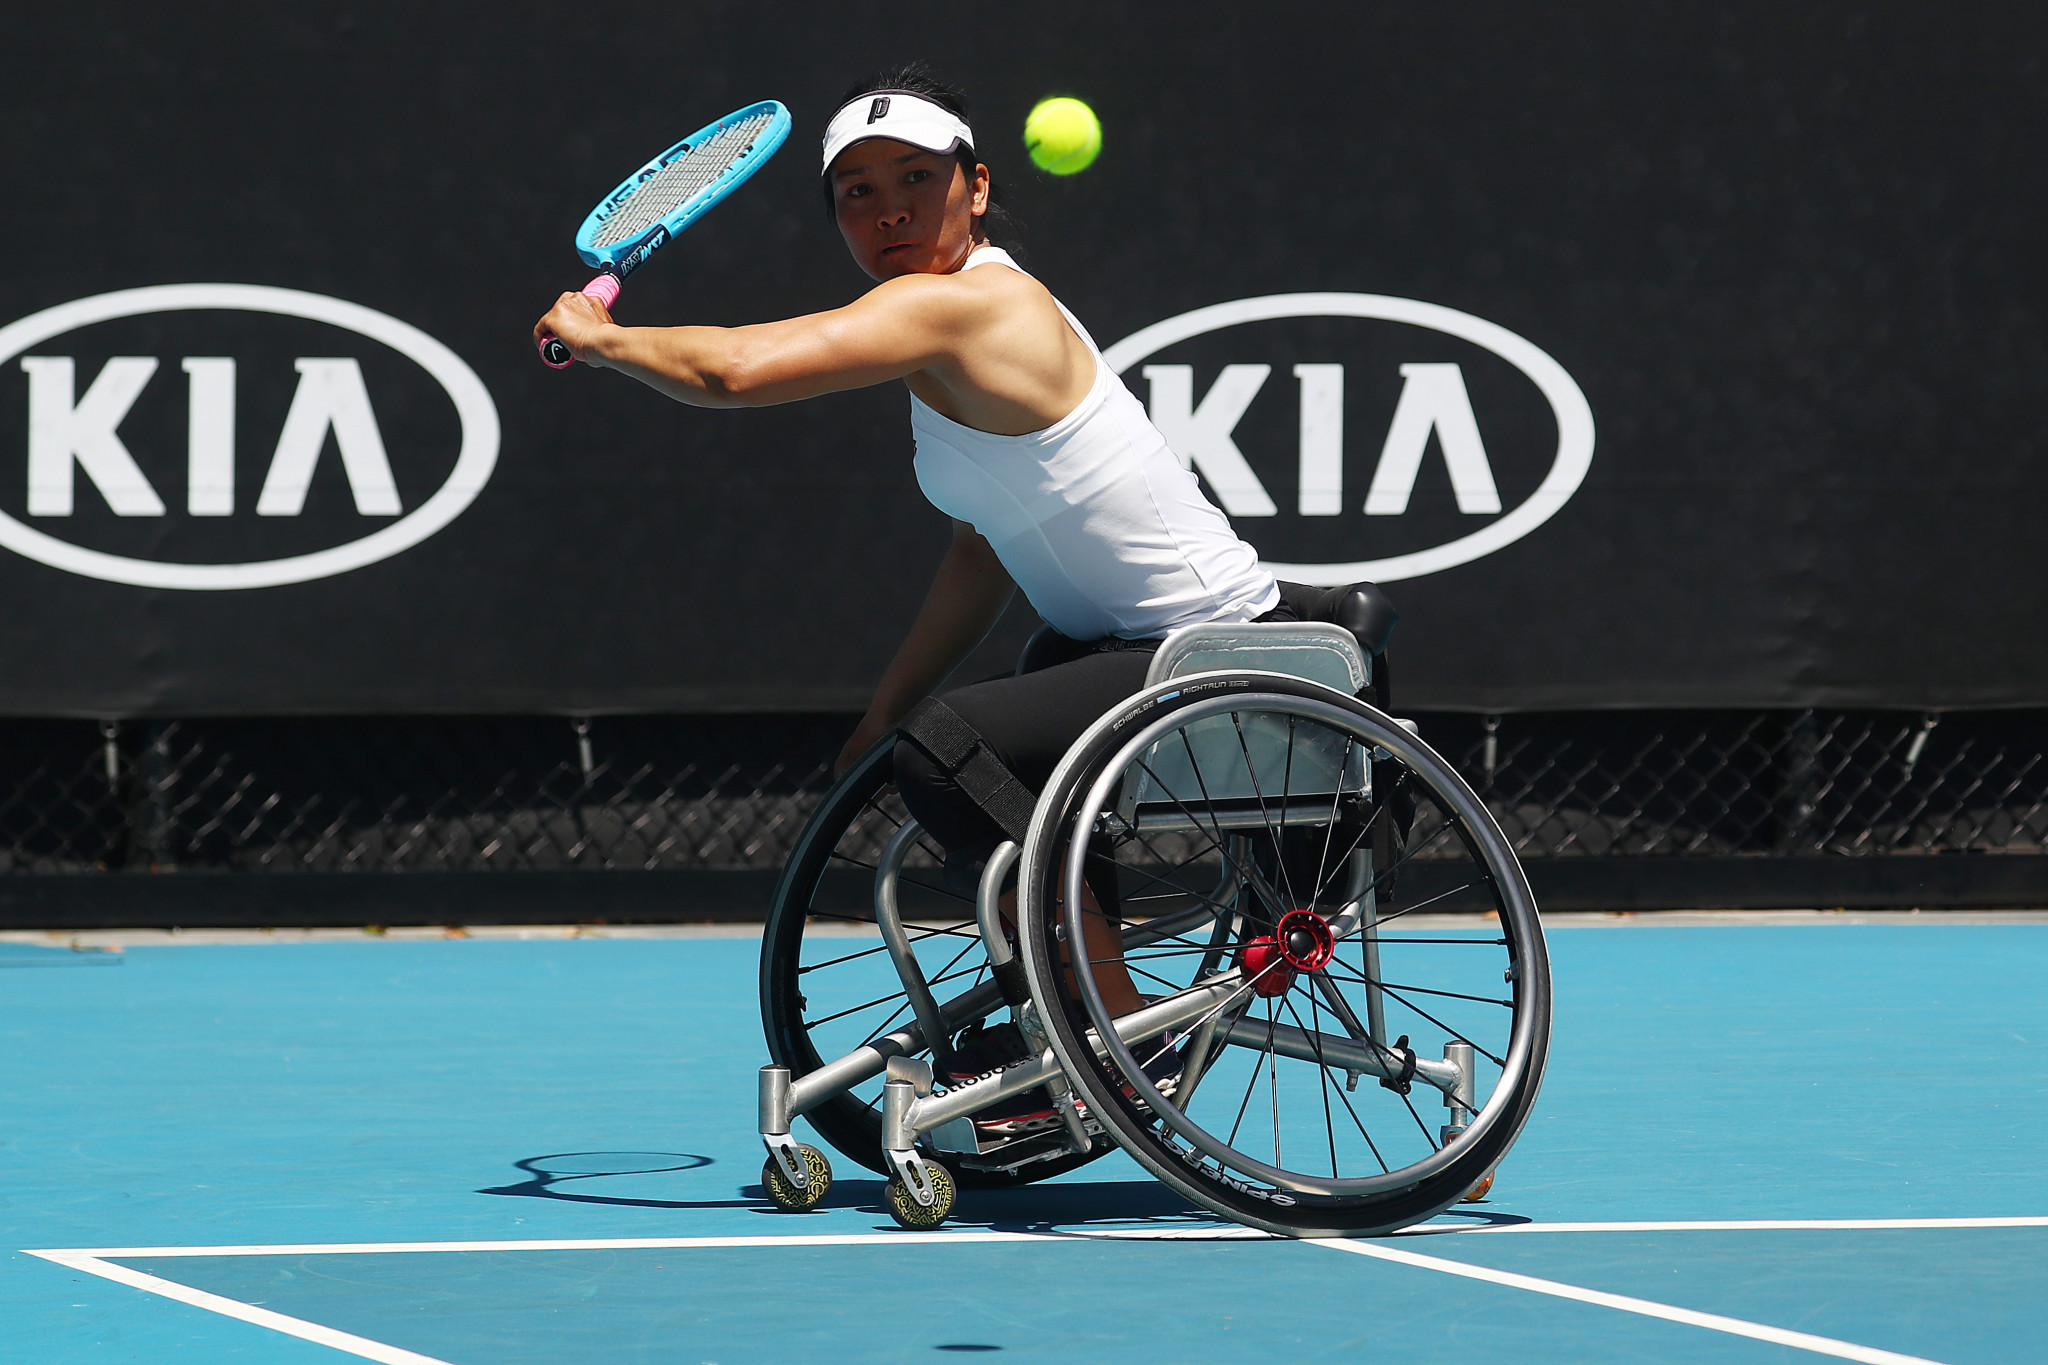 Reigning champions sent packing at Australian Open Wheelchair Tennis Championships